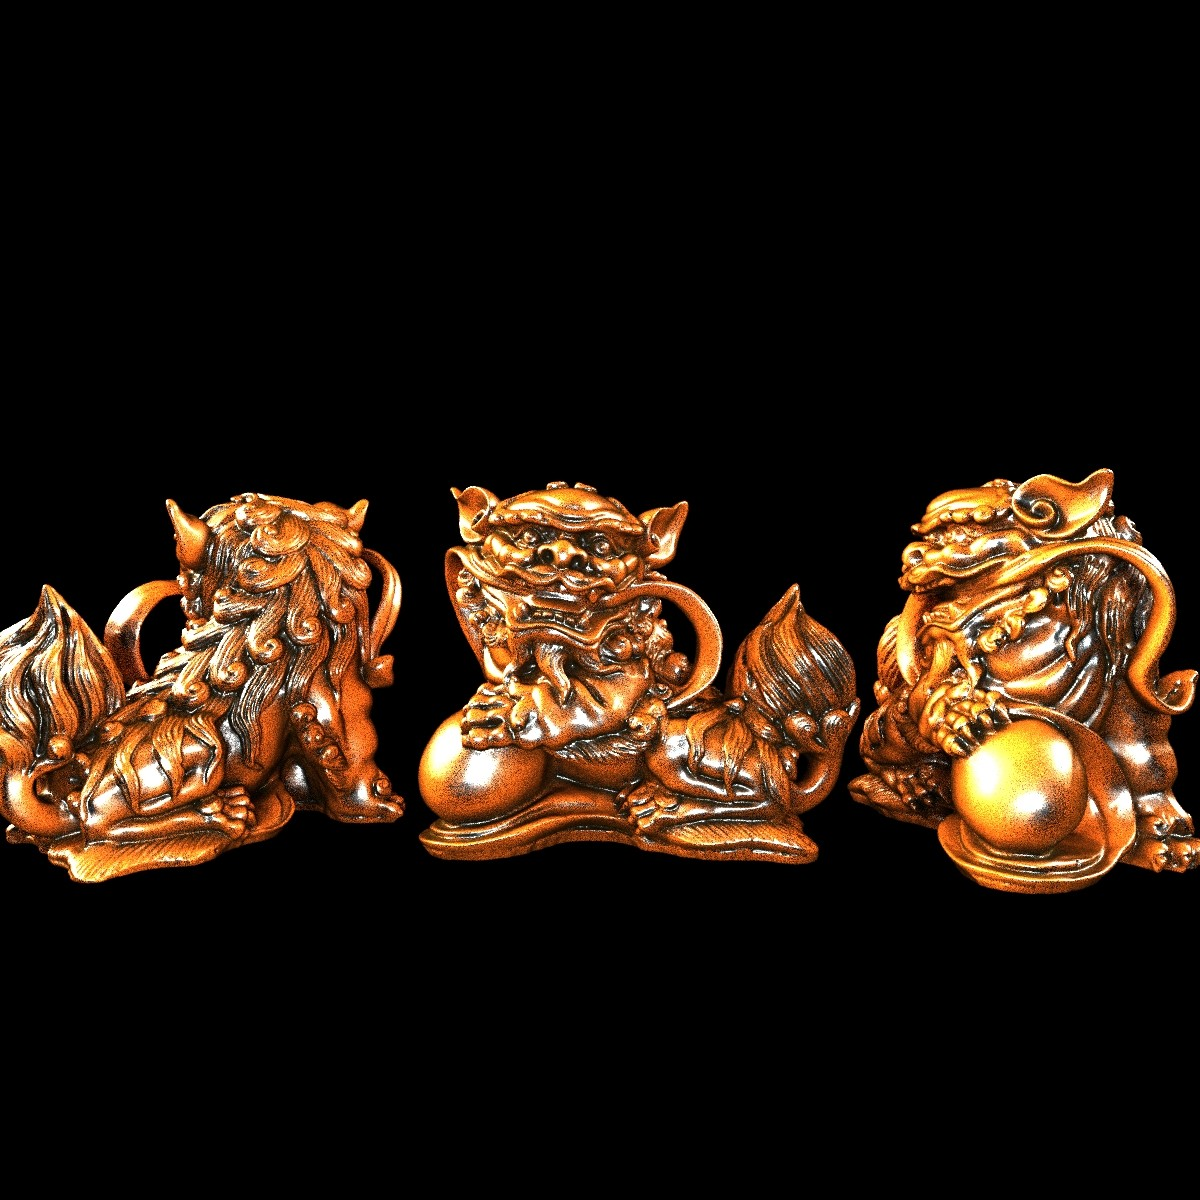 chinese_wooden_lion_statue1.jpg